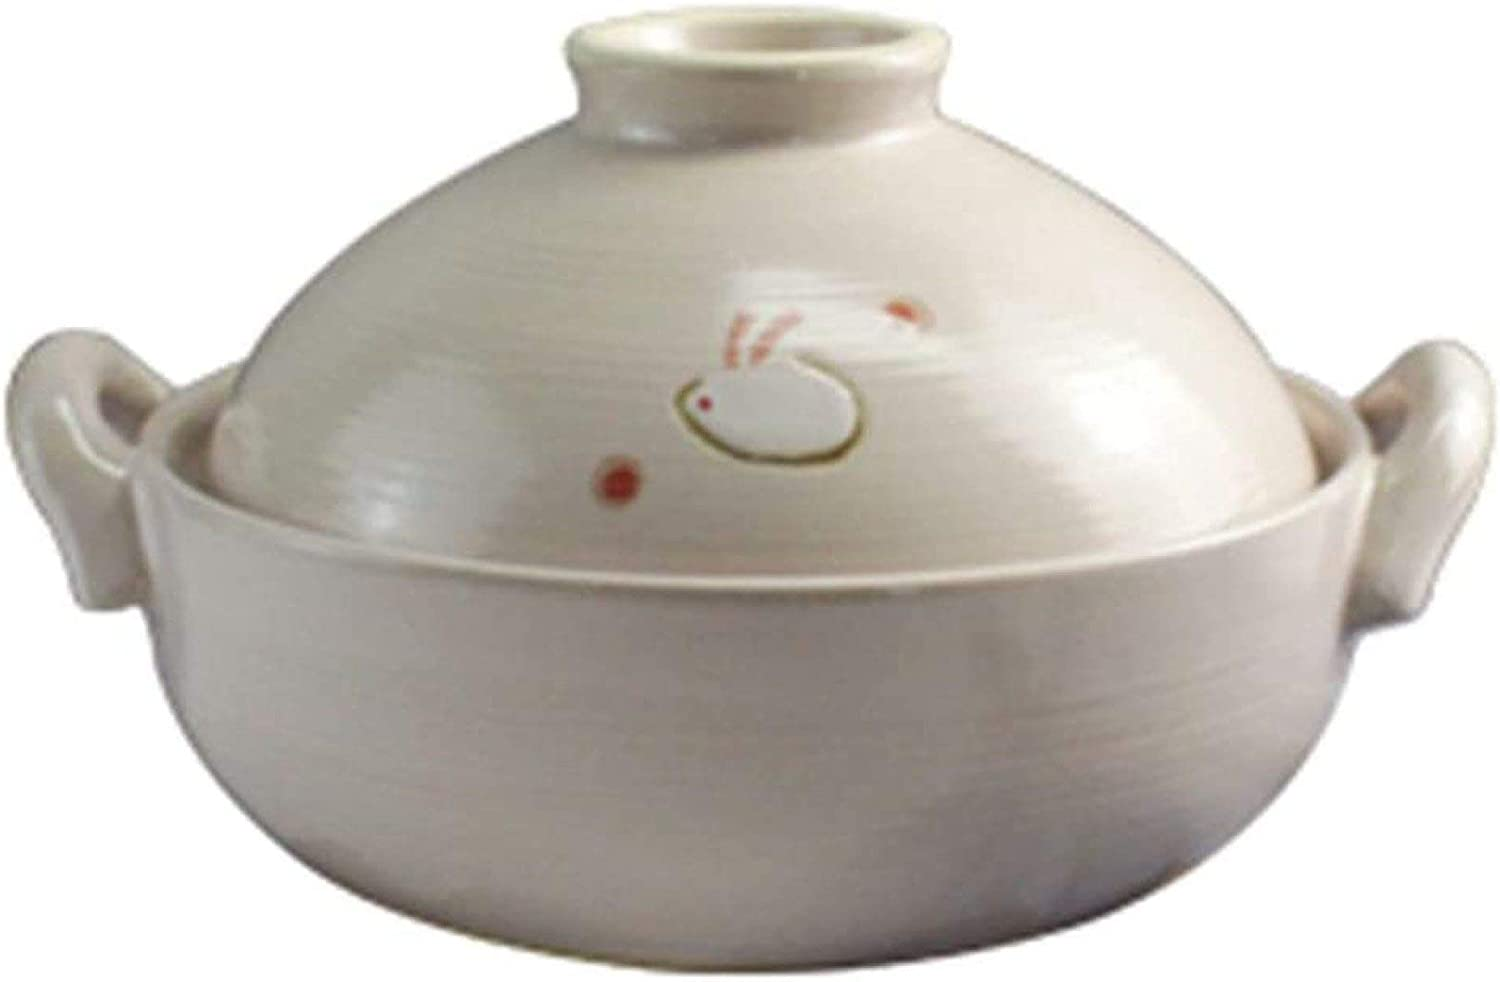 WANGP Moroccan Tagine Tagine Pot 6.3 Inches Clay Material with Lid No Pollution Easy to Clean 100% Handmade Clay Cookware Suitable for 1-3 People for Food Cooking